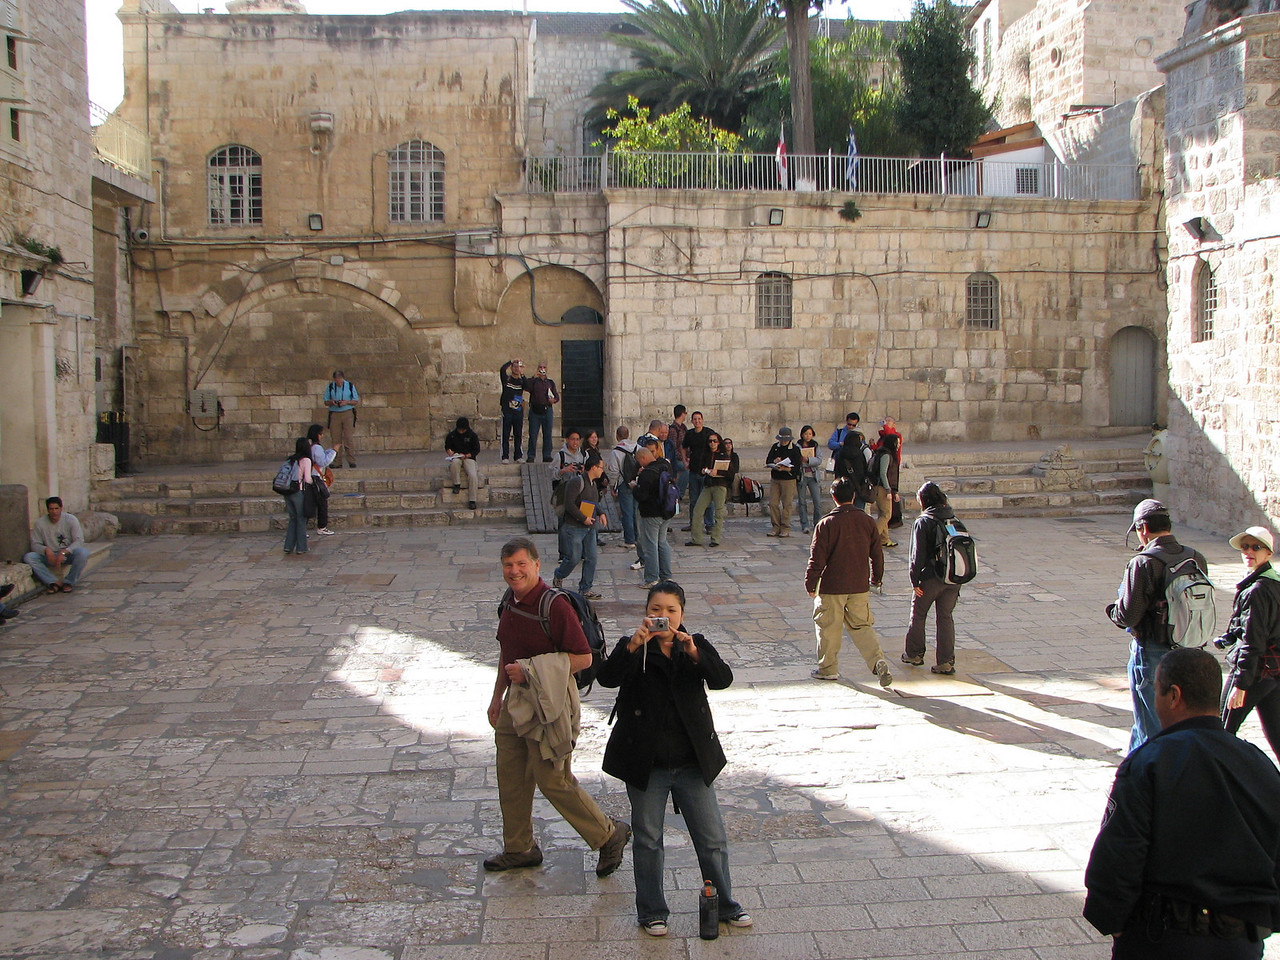 2007 12 29 Sat - Old City walk - View from stairs next to front door of Church of Holy Sepulcre